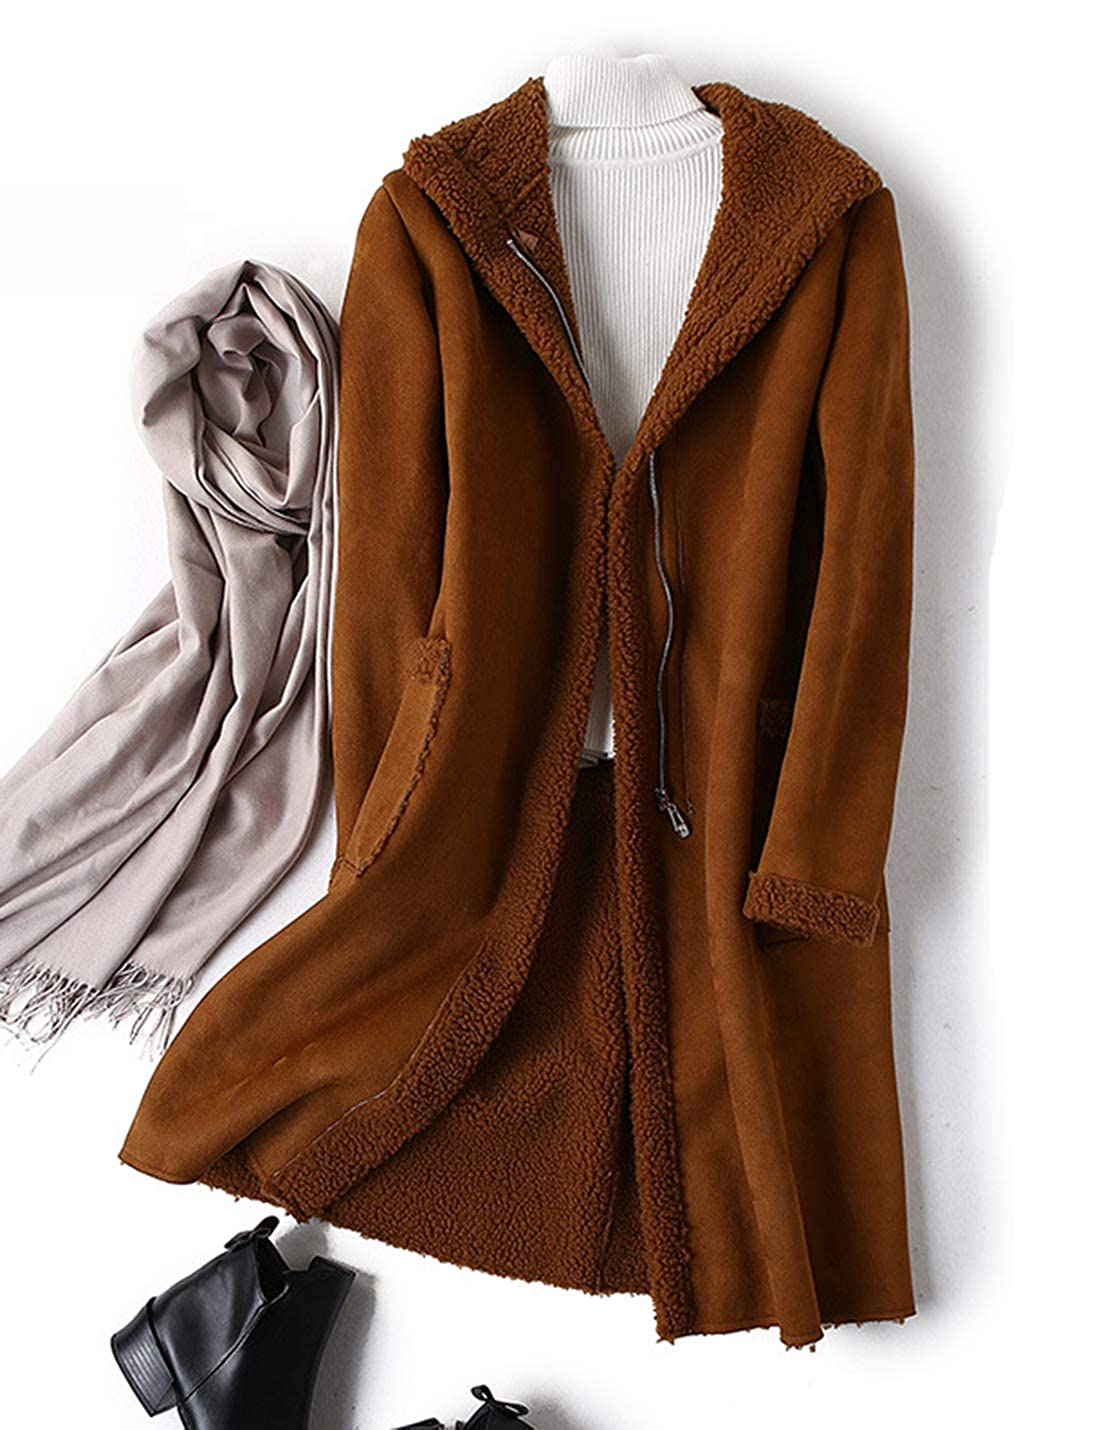 Caramel Yeokou Women's Thick Zipper up Lapel Collar Sherpa Lined Suede Long Trench Coat